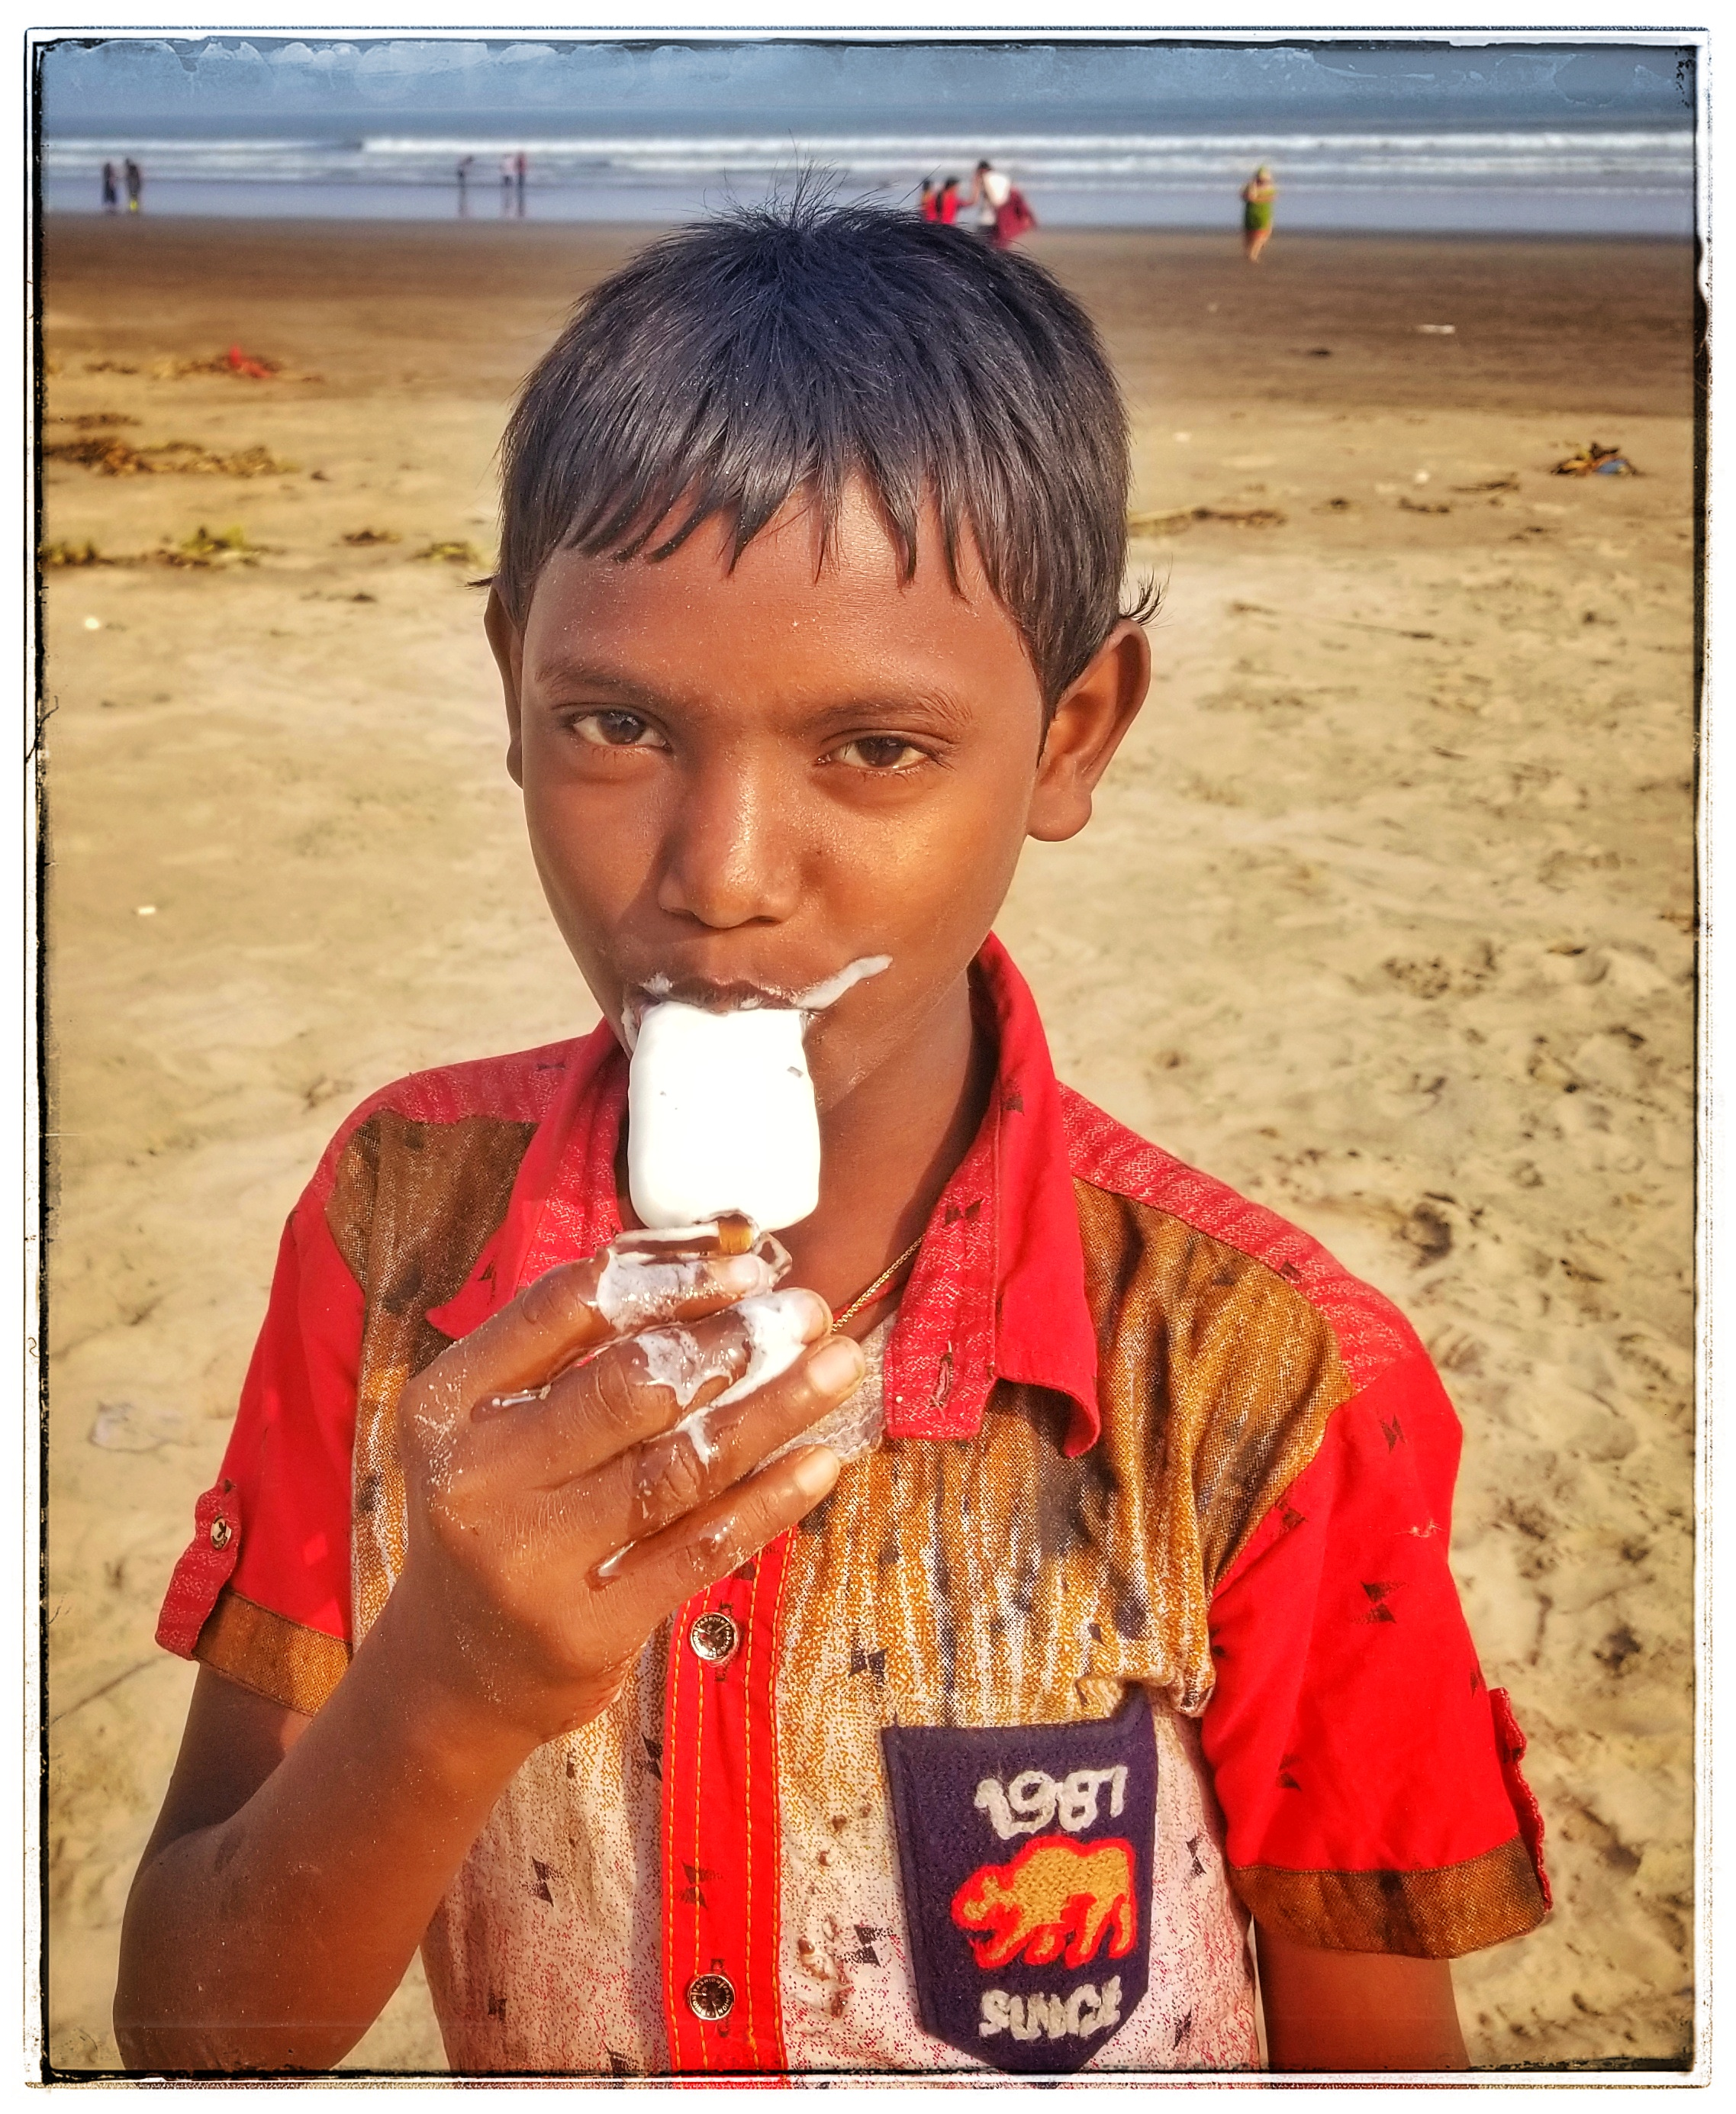 Ice cream in India is very good. Highlight of the day for the kids.